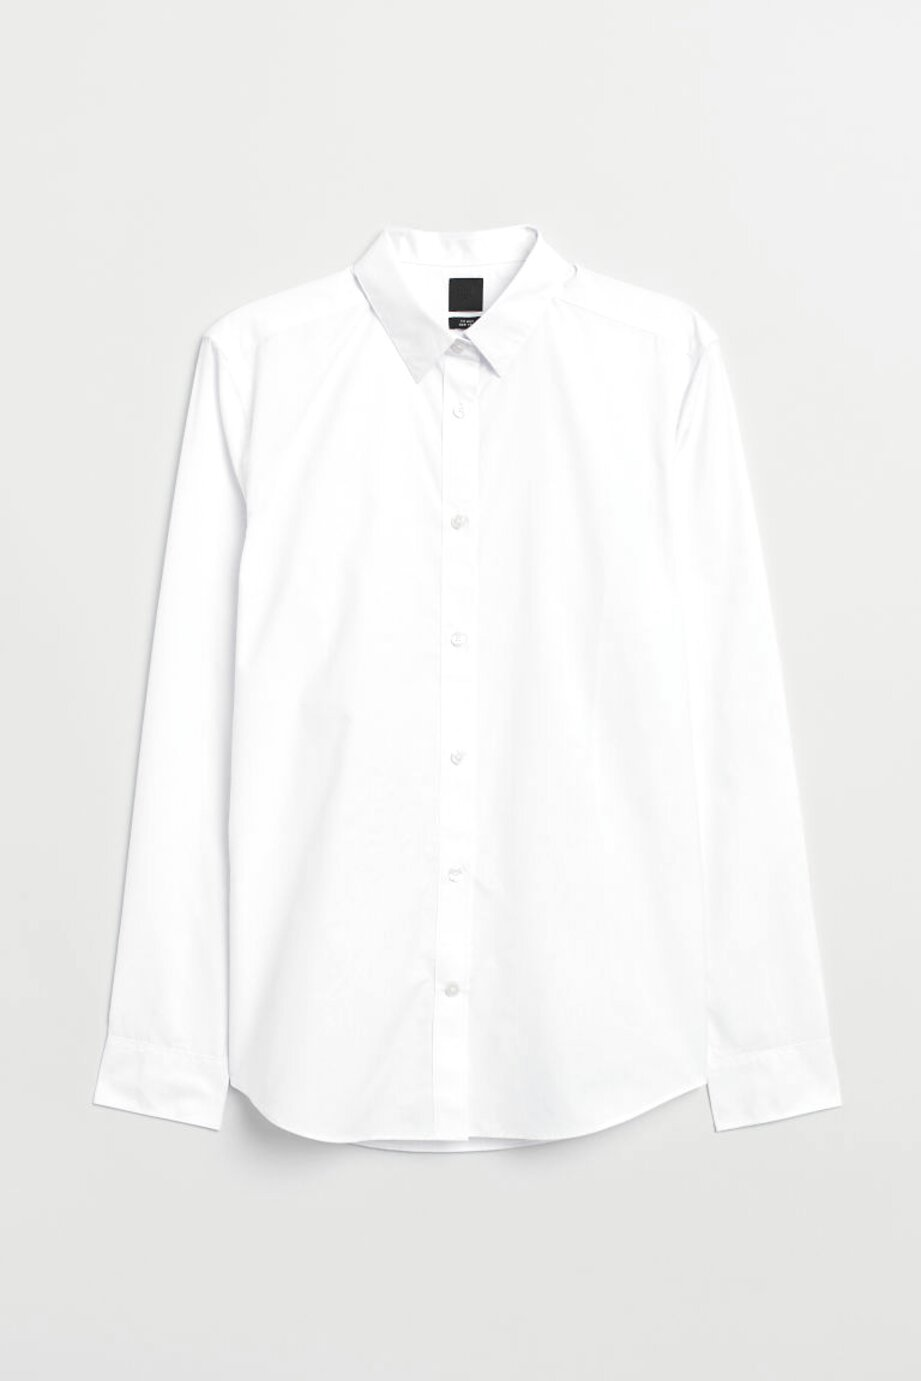 h m white shirt for sale